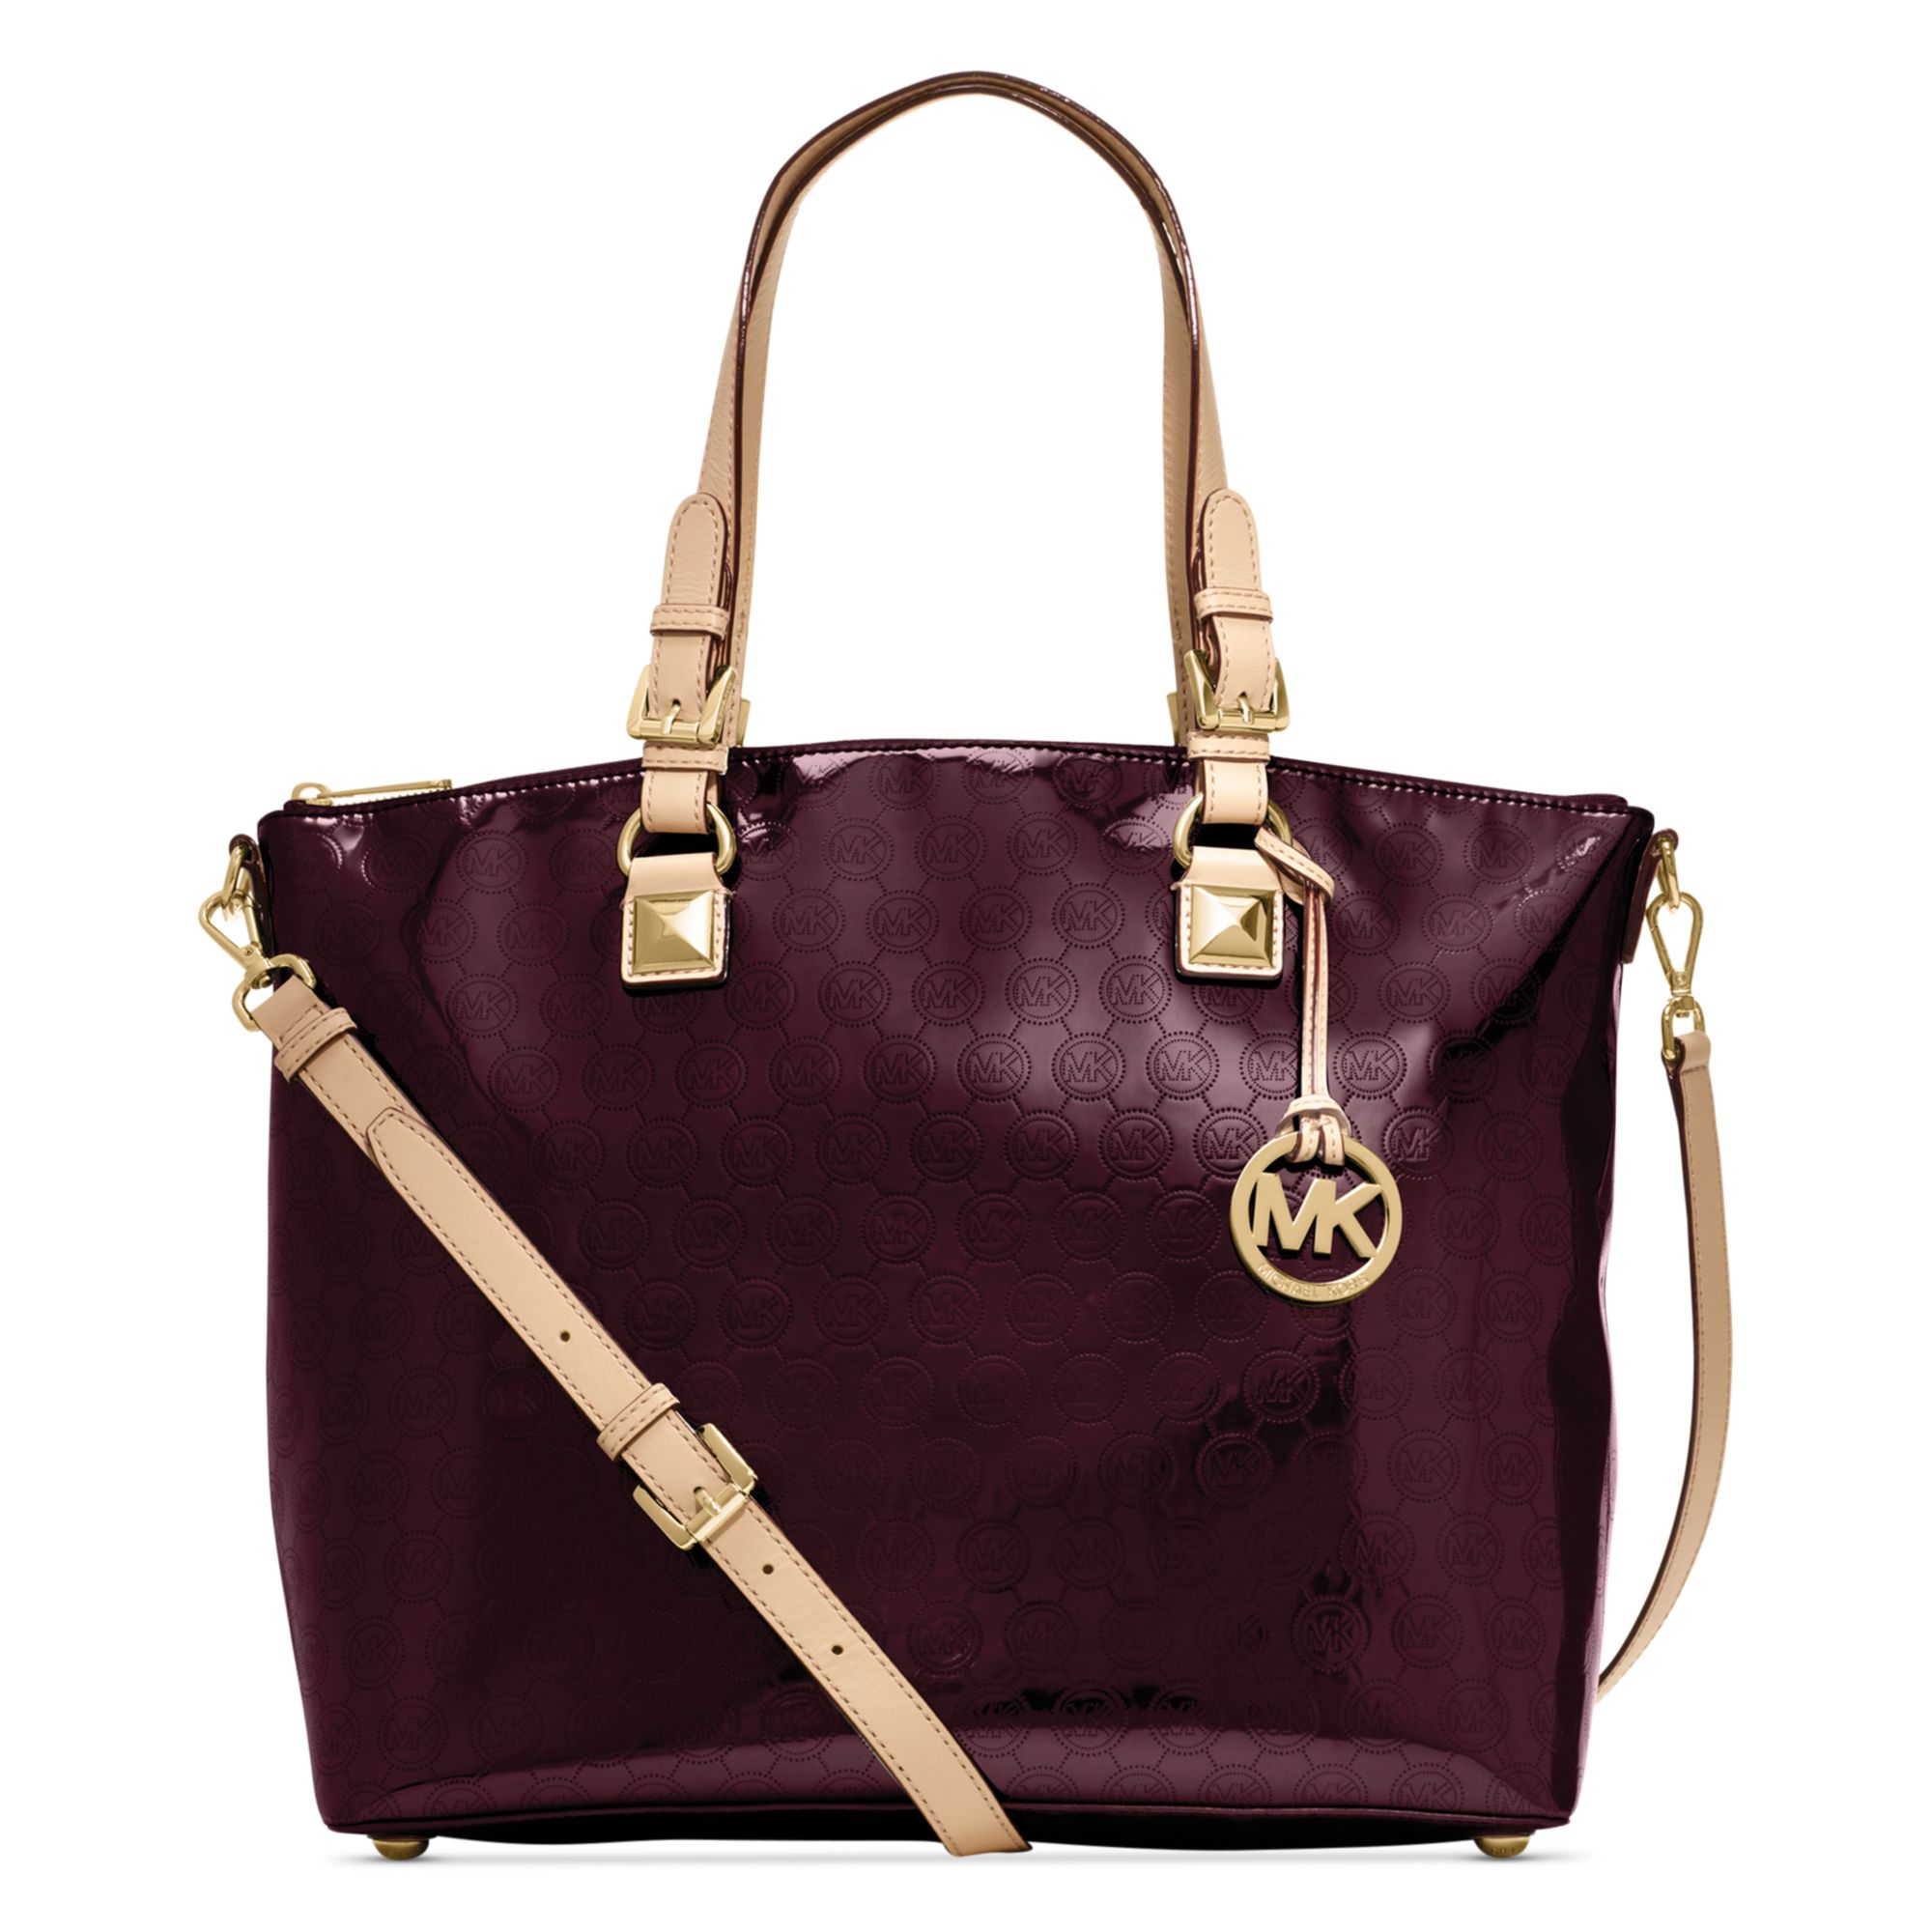 michael kors jet set item multi function satchel in purple. Black Bedroom Furniture Sets. Home Design Ideas